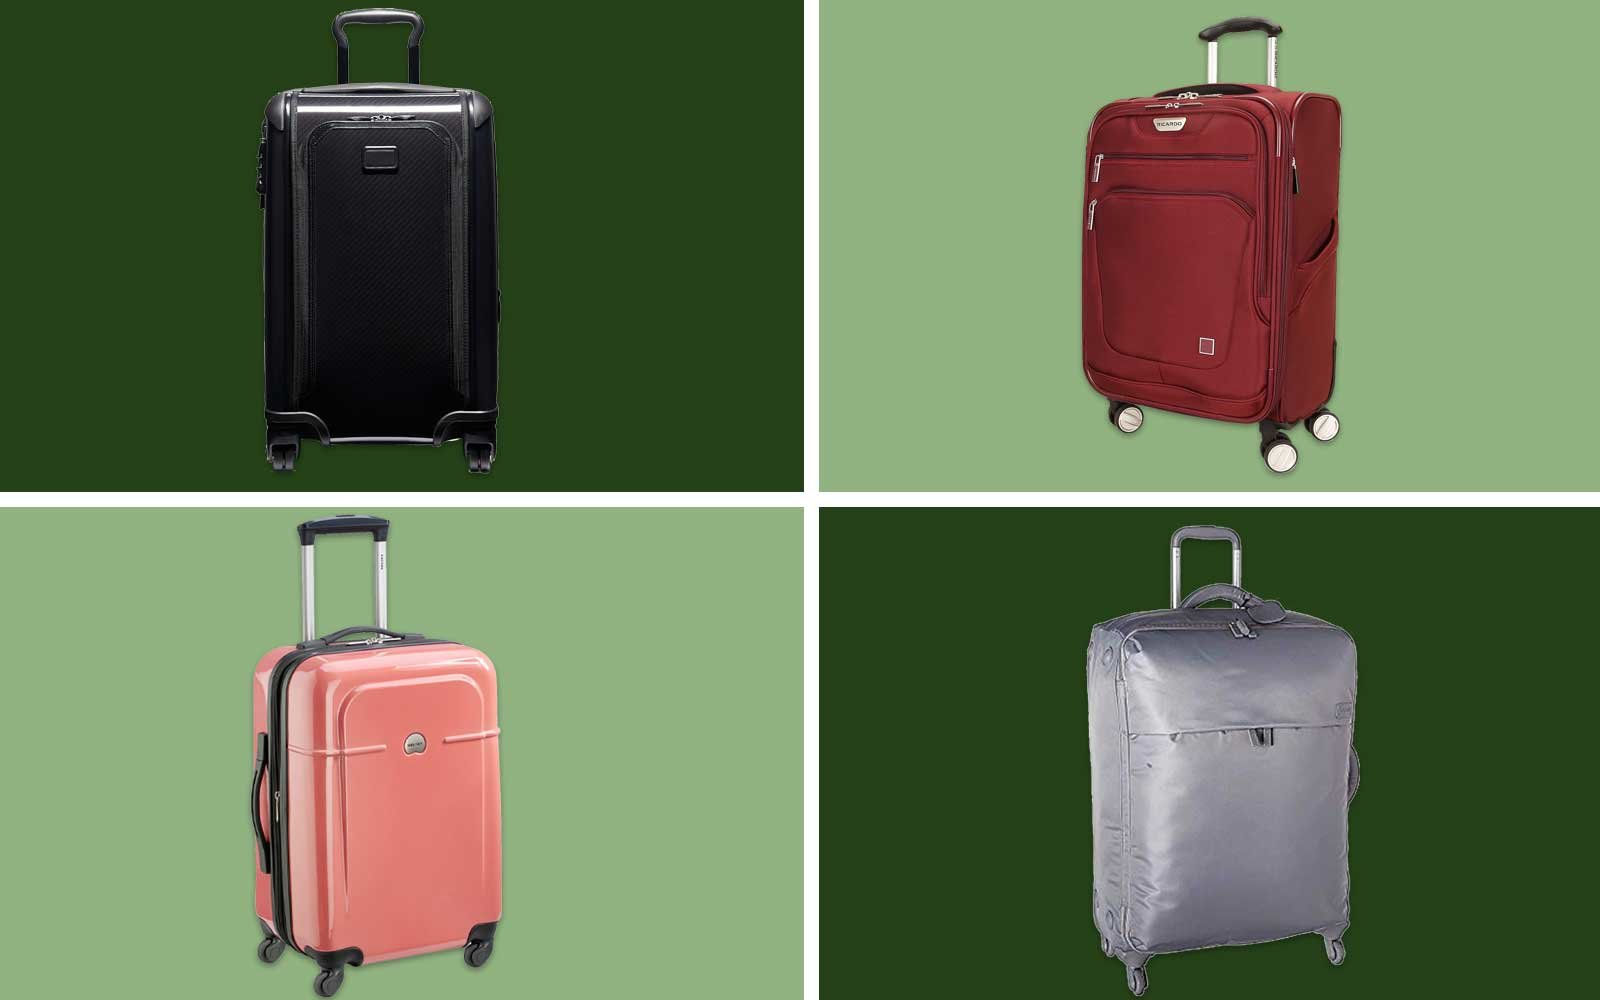 cyber-monday-luggage-LUGCM1019.jpg